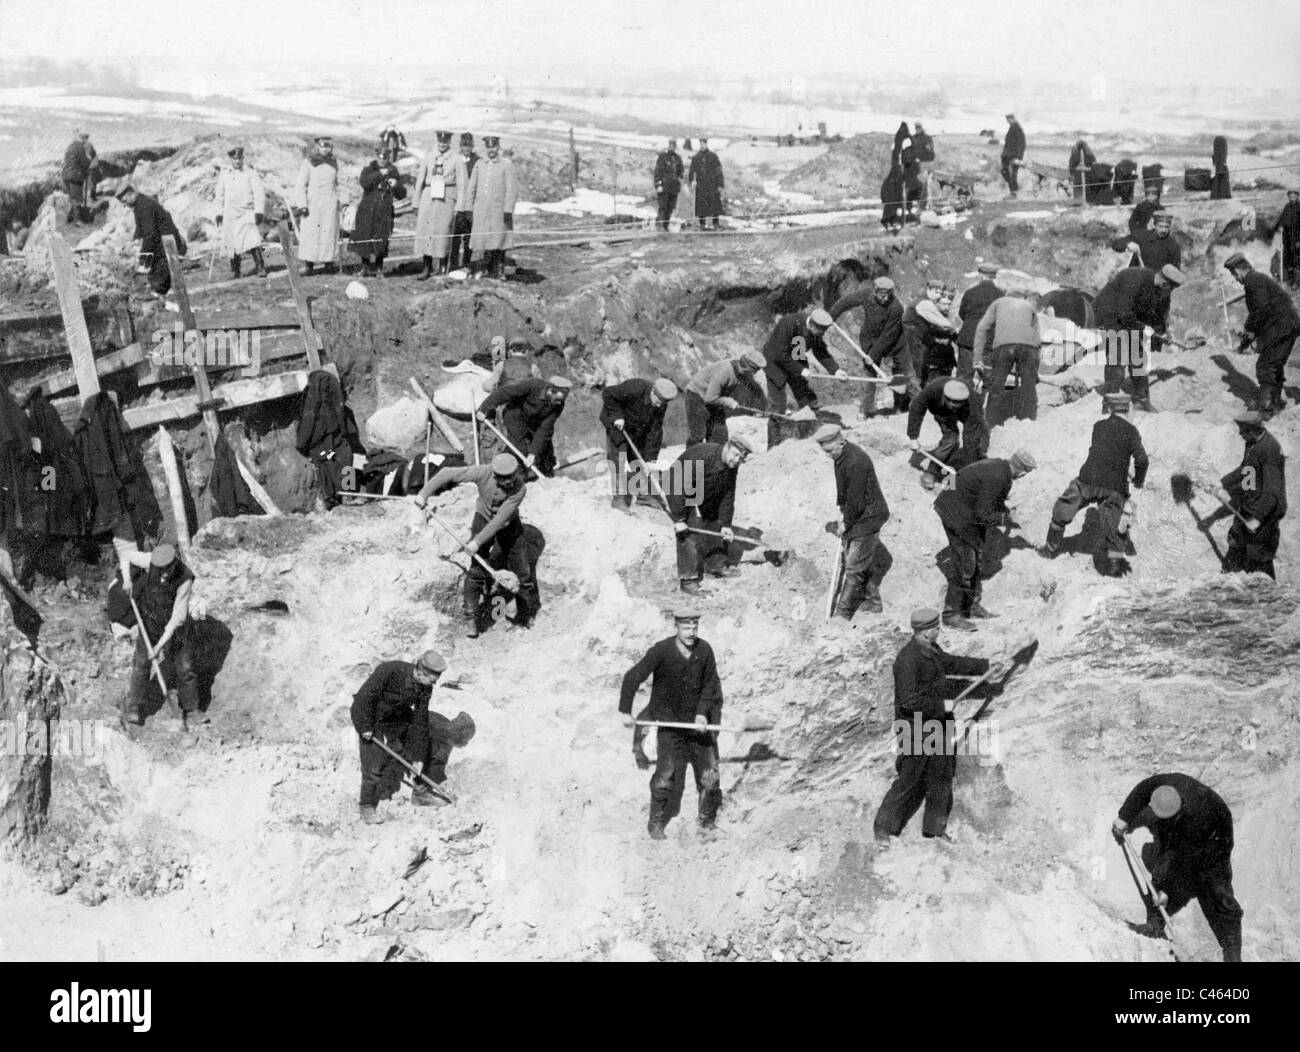 German reinforcement troops build new fortifications, 1915 - Stock Image